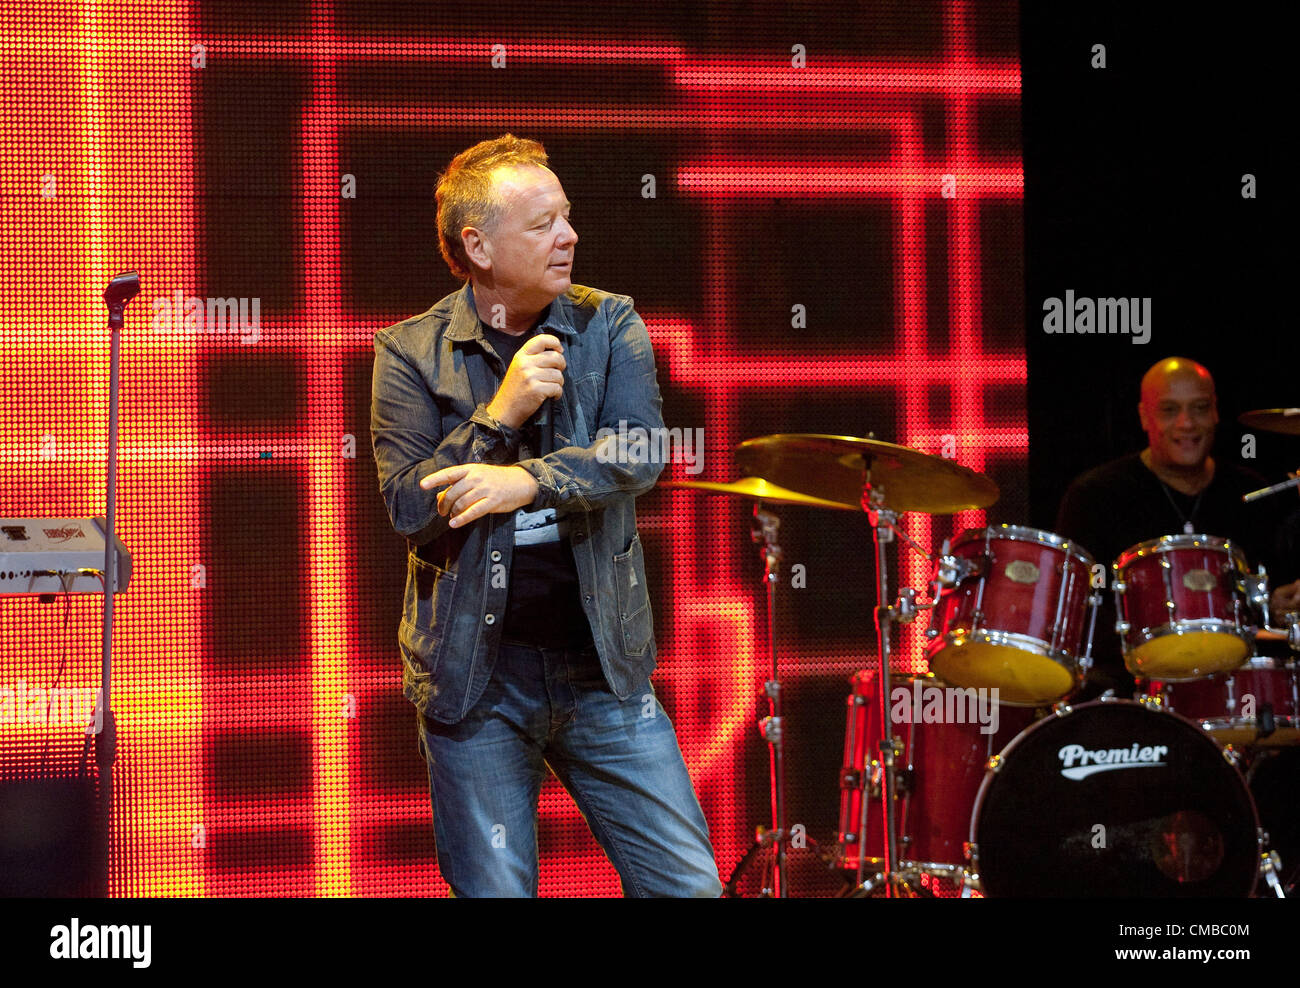 July 5, 2012 - St. Petersburg, Russia - Scottish rock band Simple Minds visiting St.Petersburg to perform at charity - Stock Image